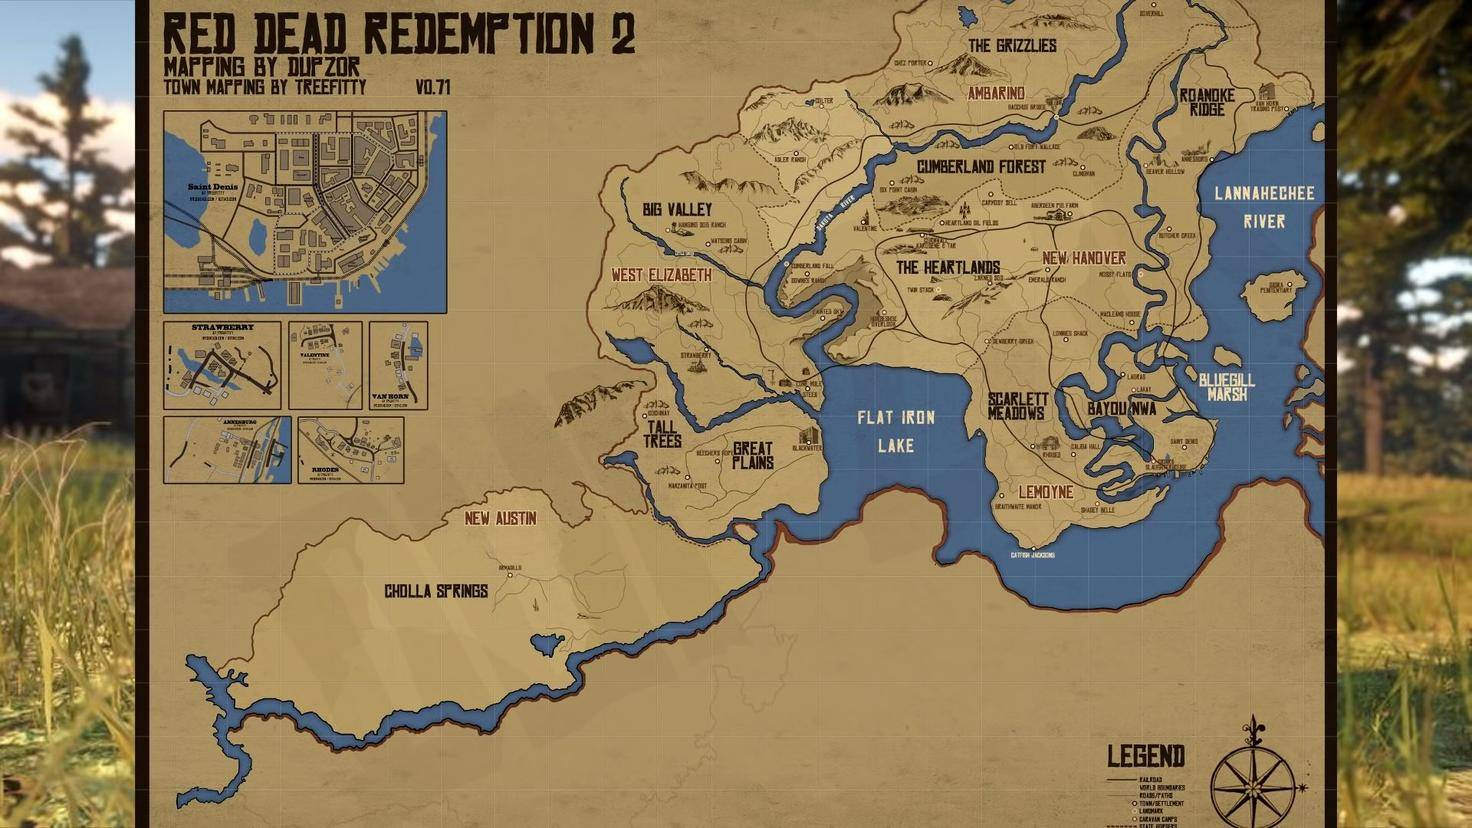 Red dead redemption fanmap